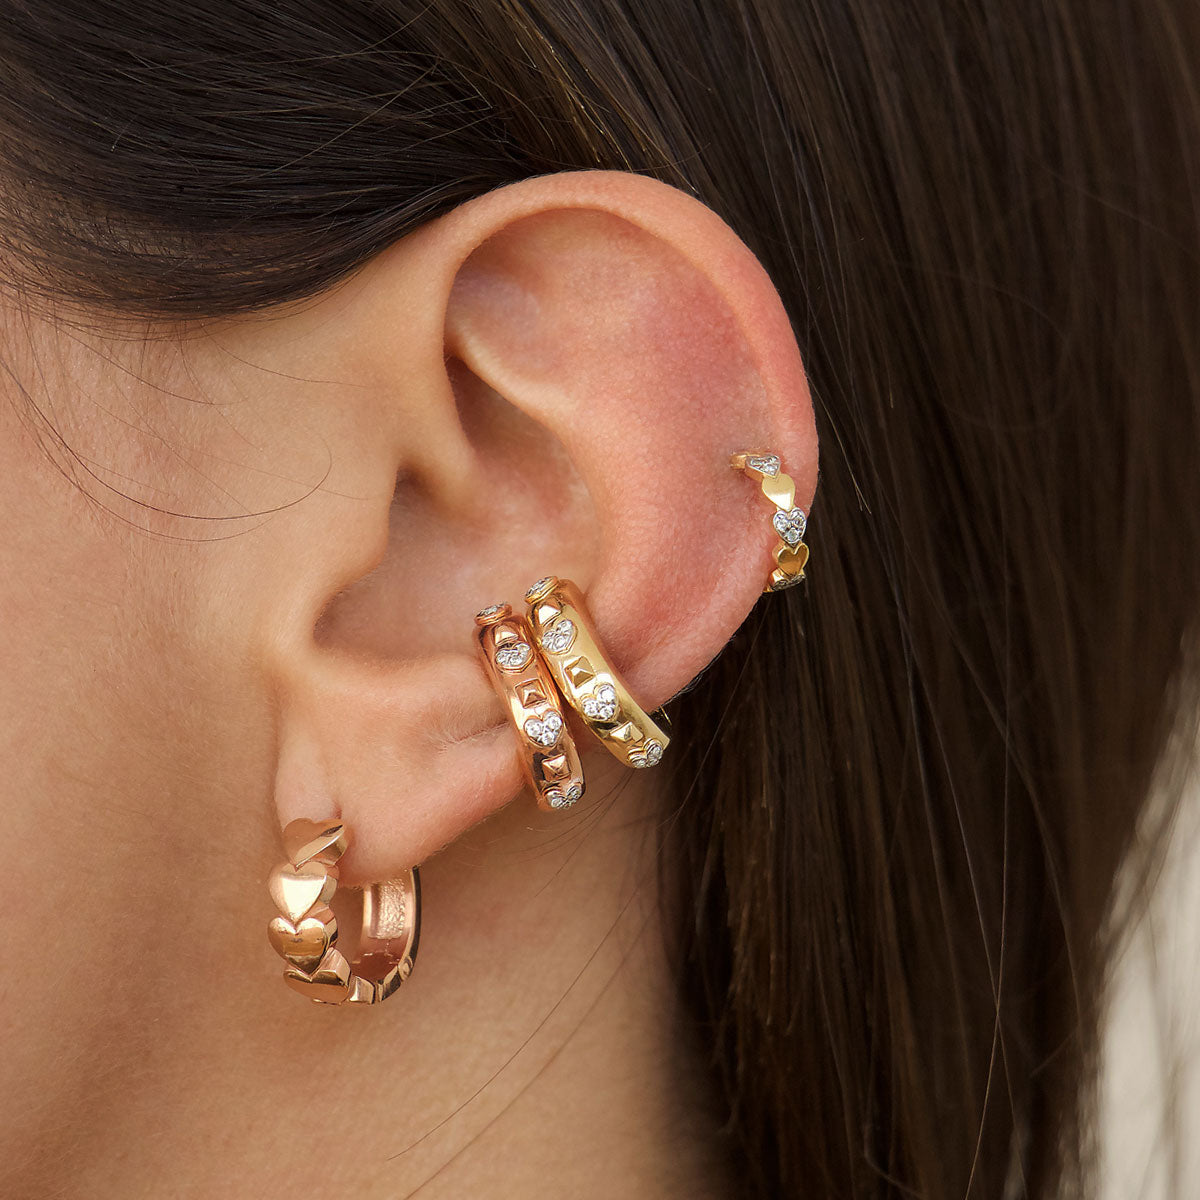 Earrings - Earcuff White Zircons Hearts and Studs - 3 | Rue des Mille